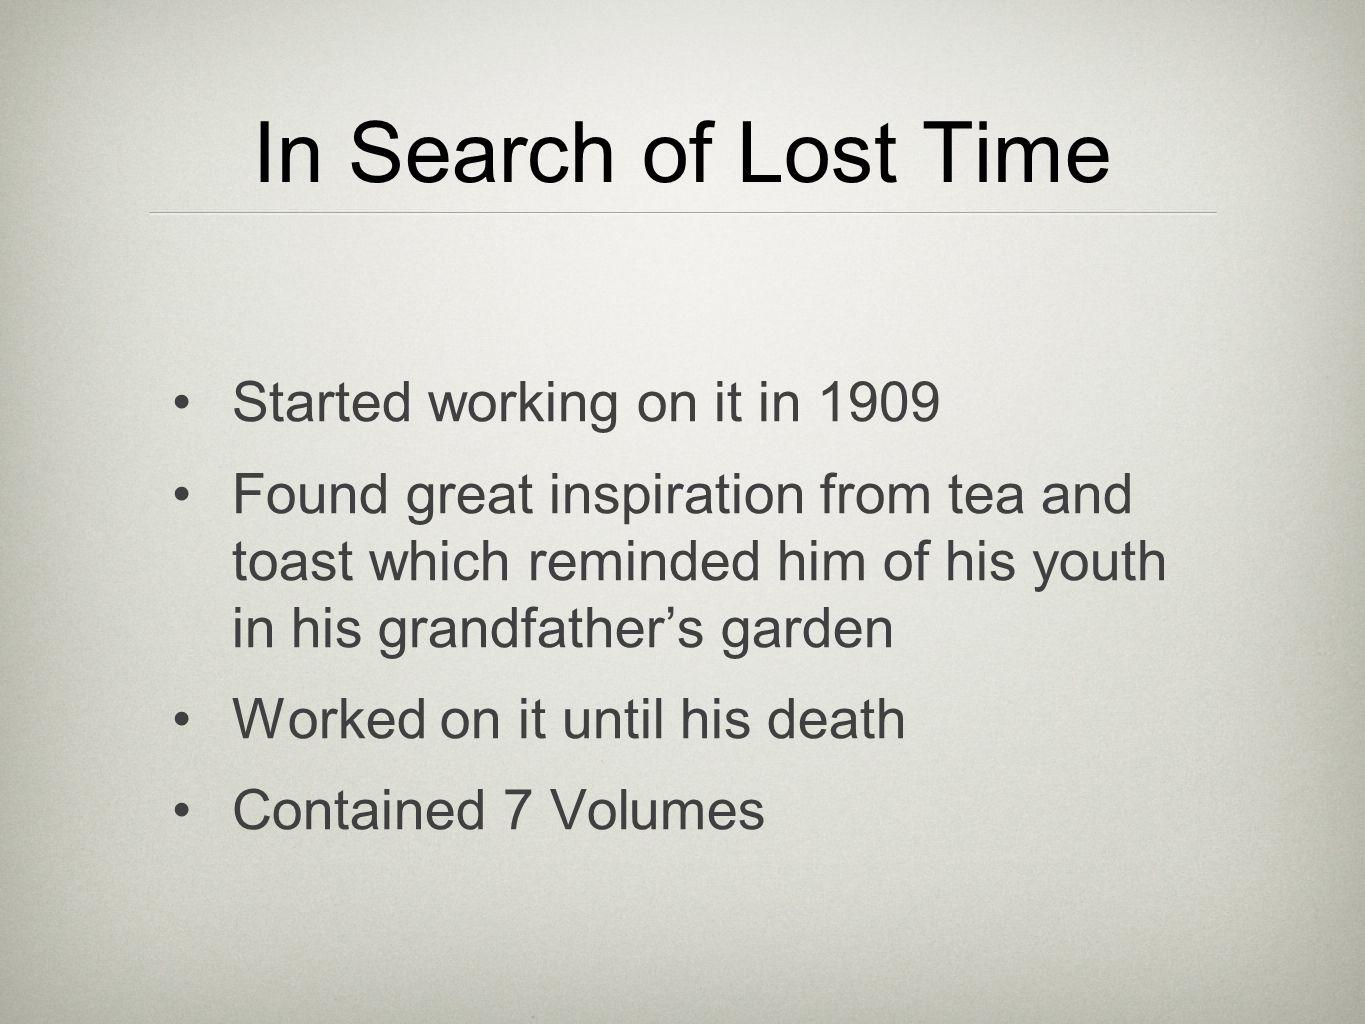 In Search of Lost Time Started working on it in 1909 Found great inspiration from tea and toast which reminded him of his youth in his grandfathers garden Worked on it until his death Contained 7 Volumes